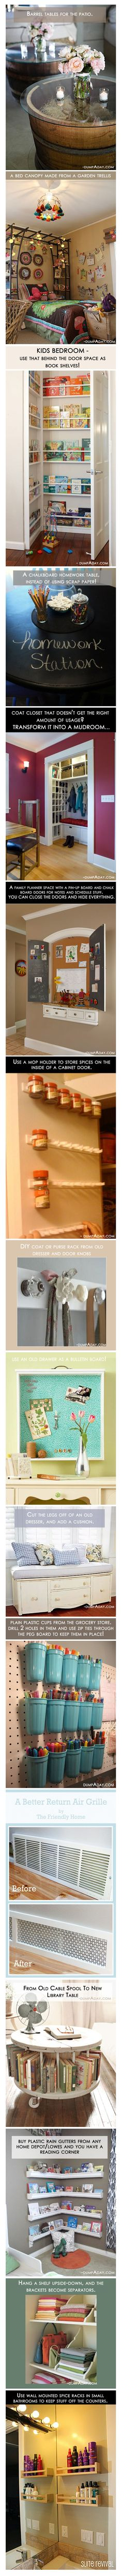 16 Amazing Do It Yourself Home Ideas -- lots of good ideas in one place